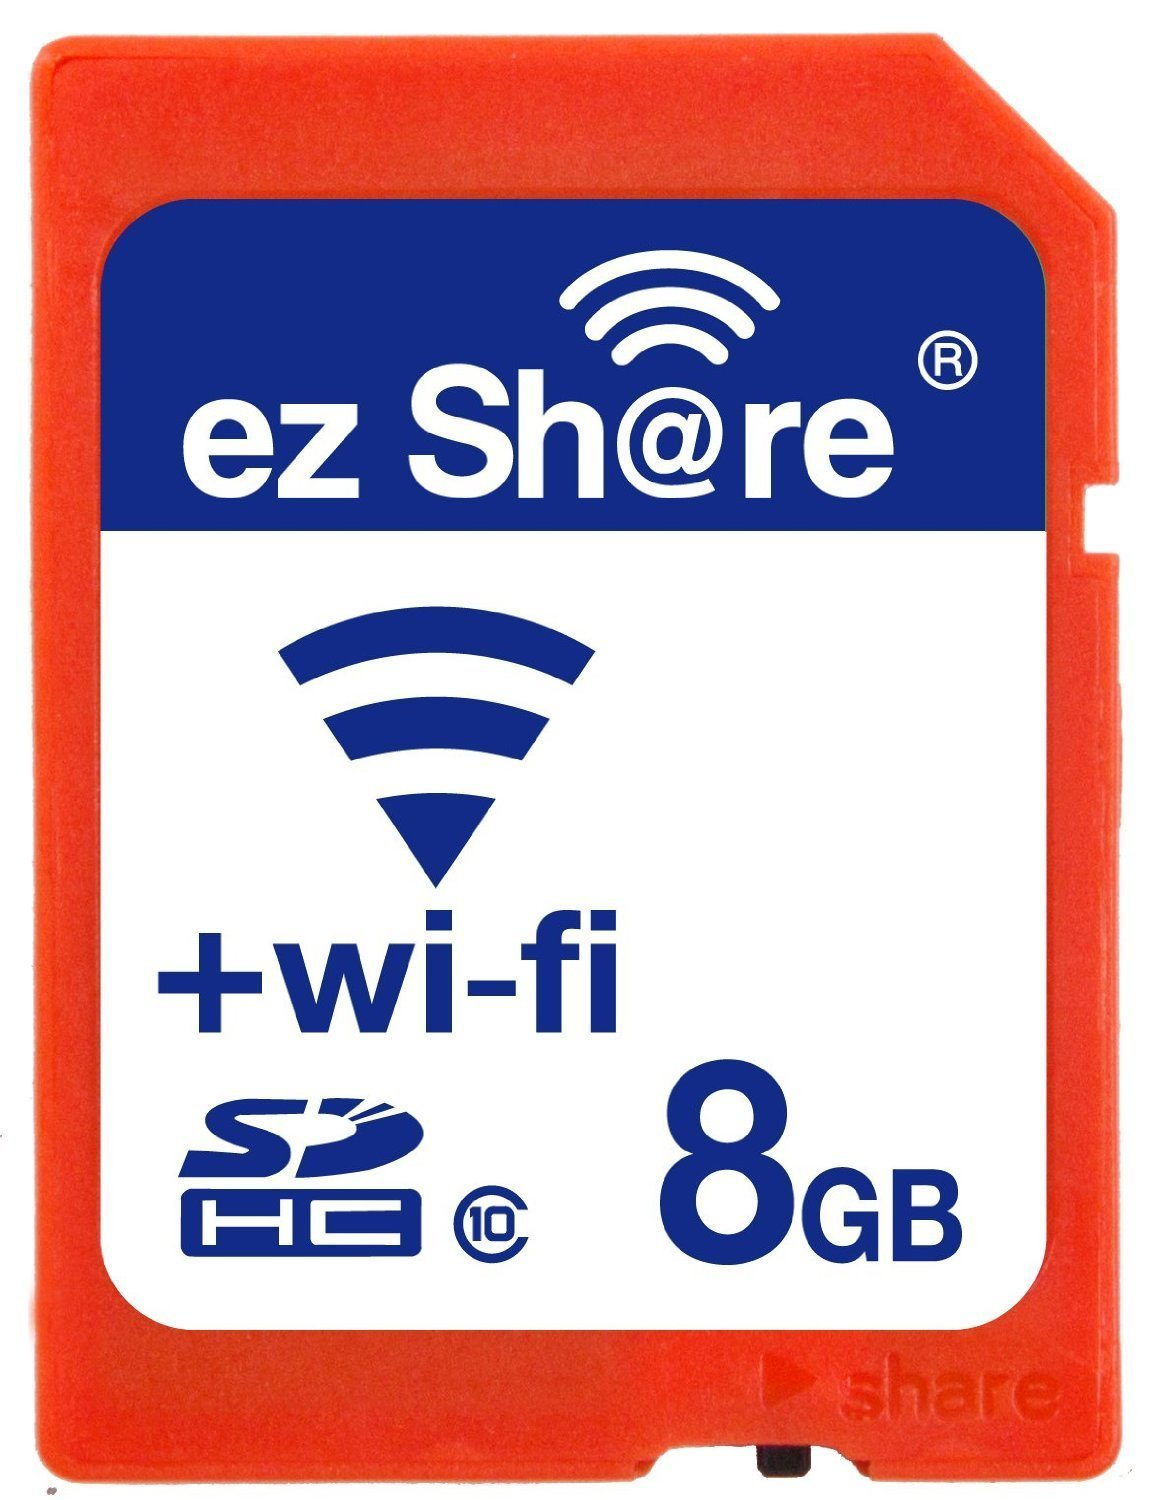 Wifi Sd Memory Card 8GB Class 10 New New Inc® 2nd Generation Ez Share